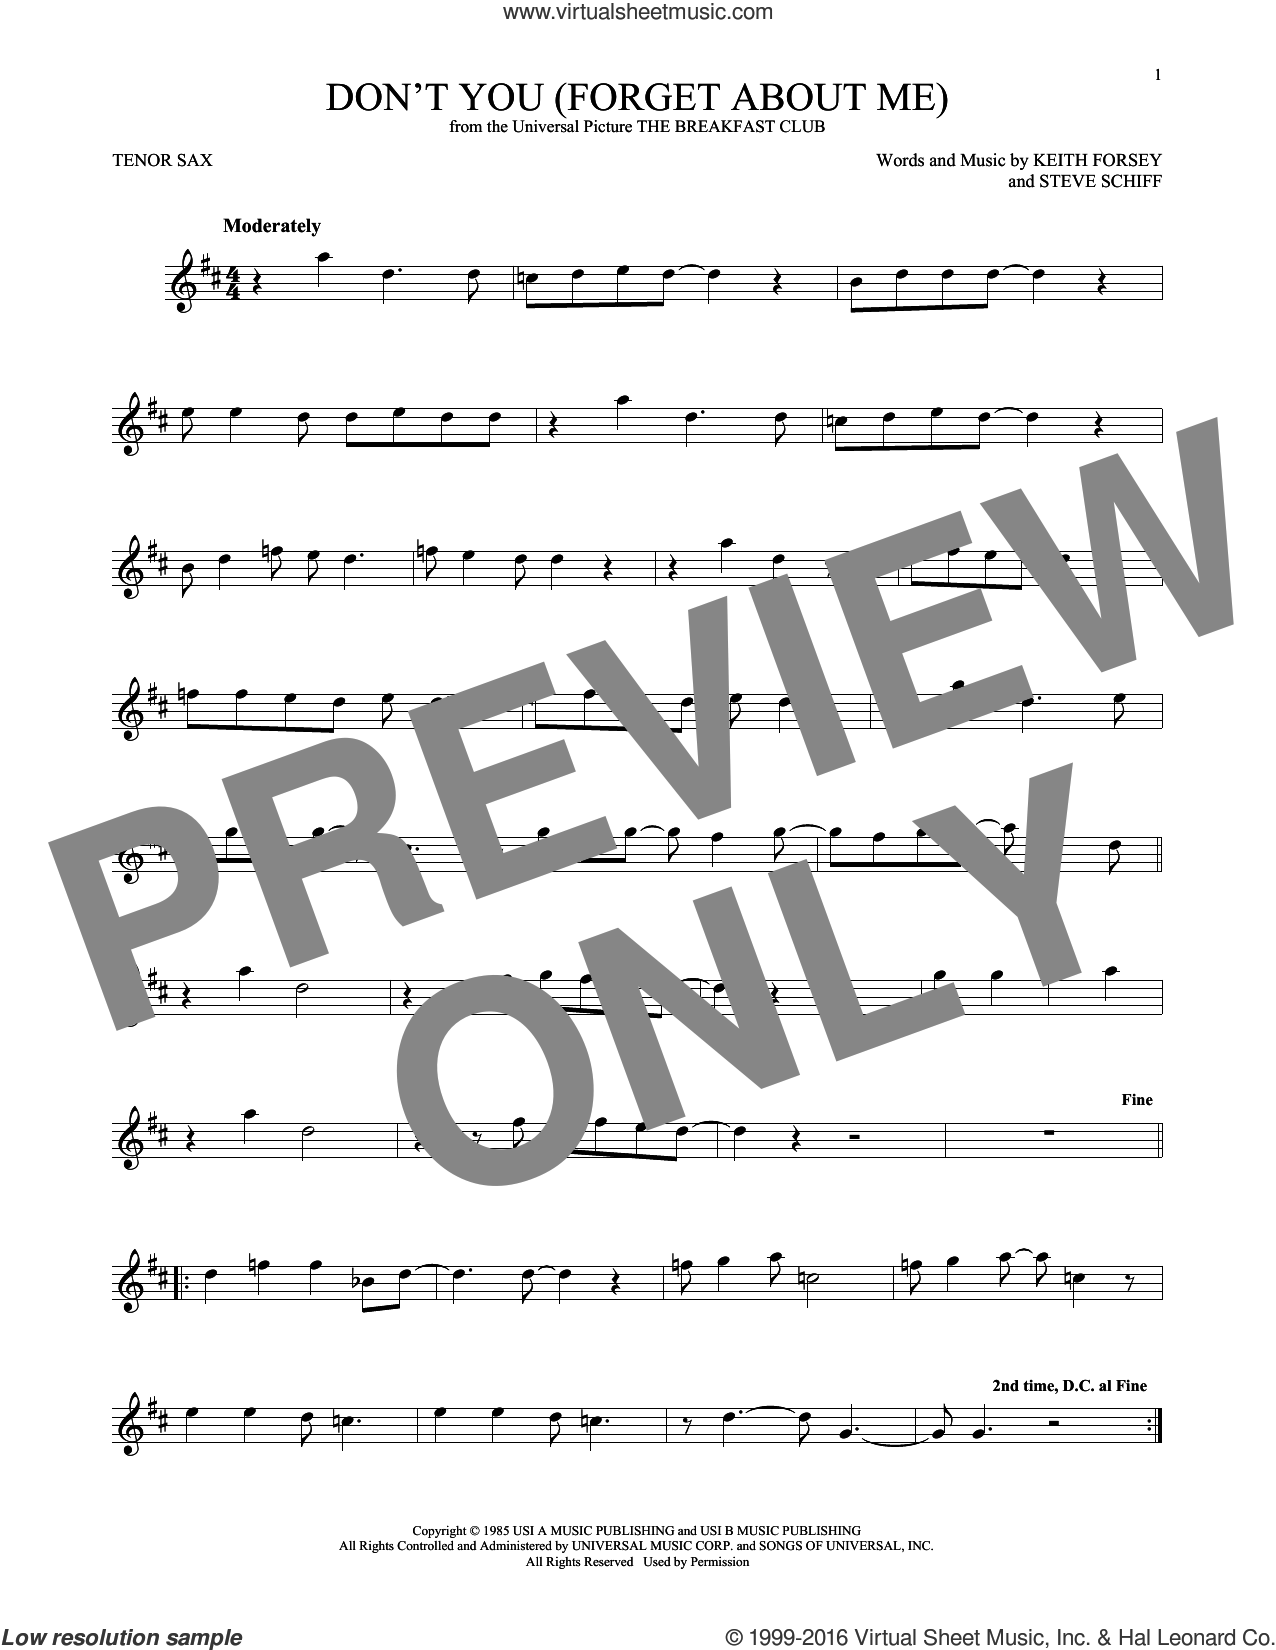 Don't You (Forget About Me) sheet music for tenor saxophone solo by Simple Minds, Hawk Nelson, Keith Forsey and Steve Schiff, intermediate skill level